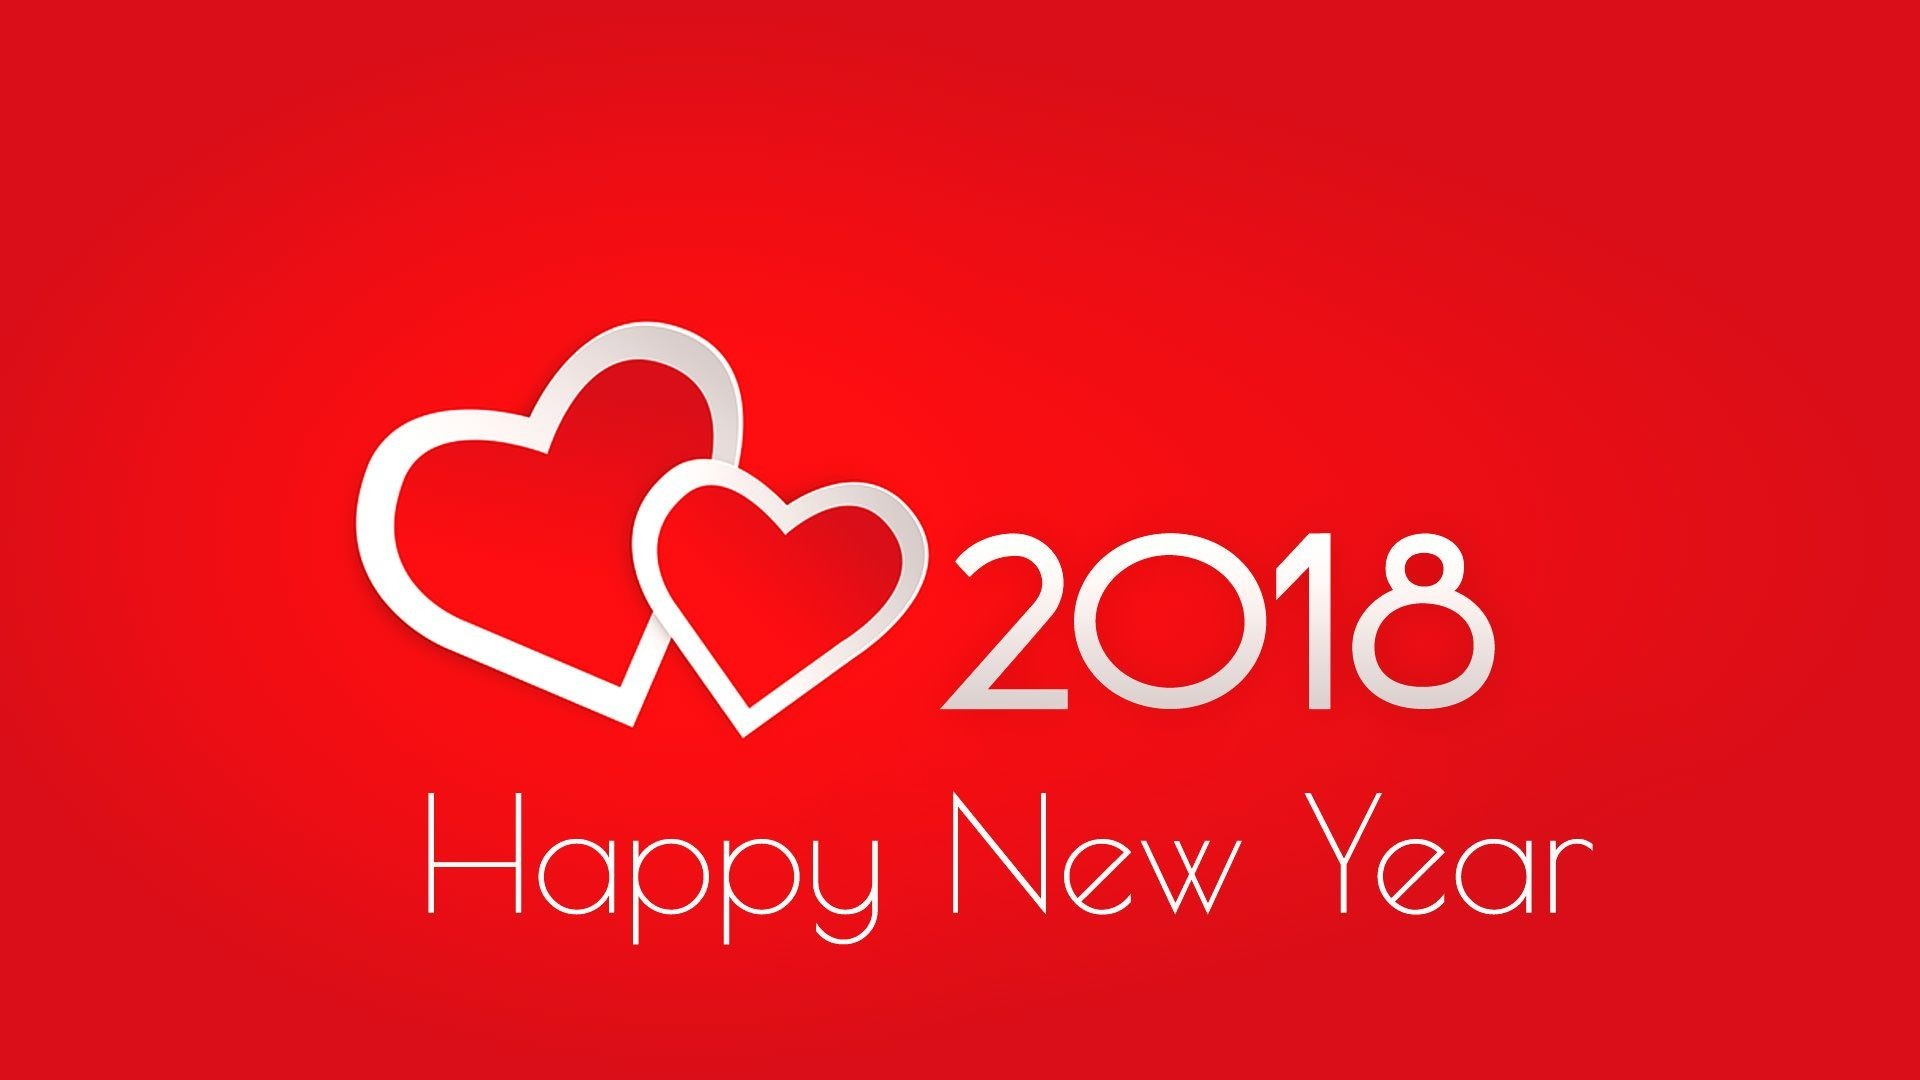 1920x1080  Most Loving and Beautiful Happy New Year 2018 Wallpaper for Lover  or you can use